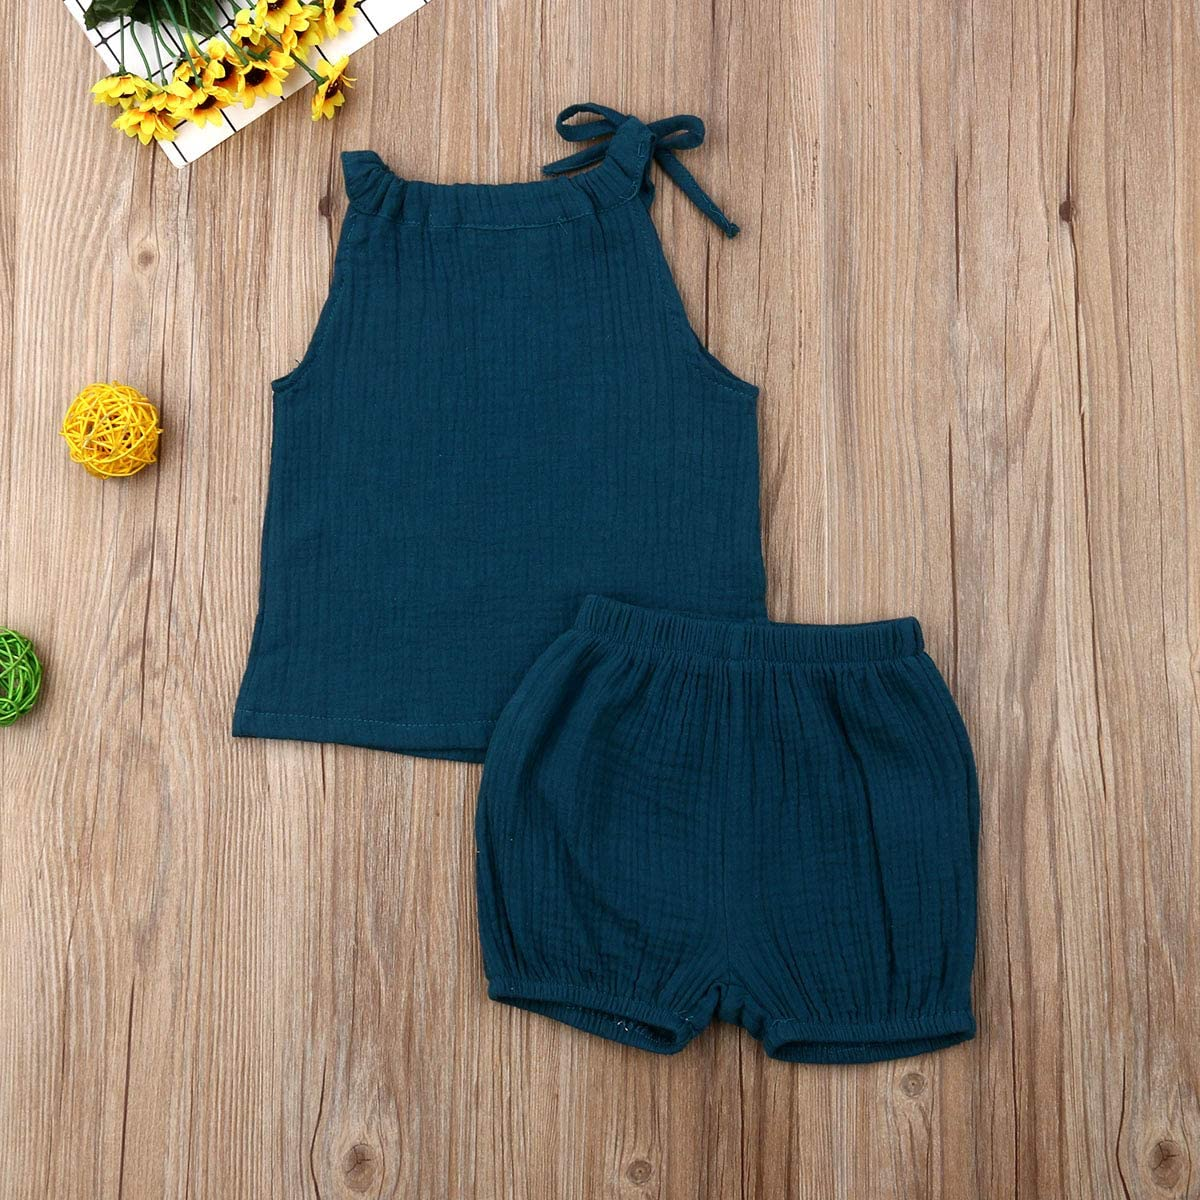 Dookingup Toddler Baby Girls Short Sets Sleeveless Tank Top Drawstring Short Pants Summer Outfit